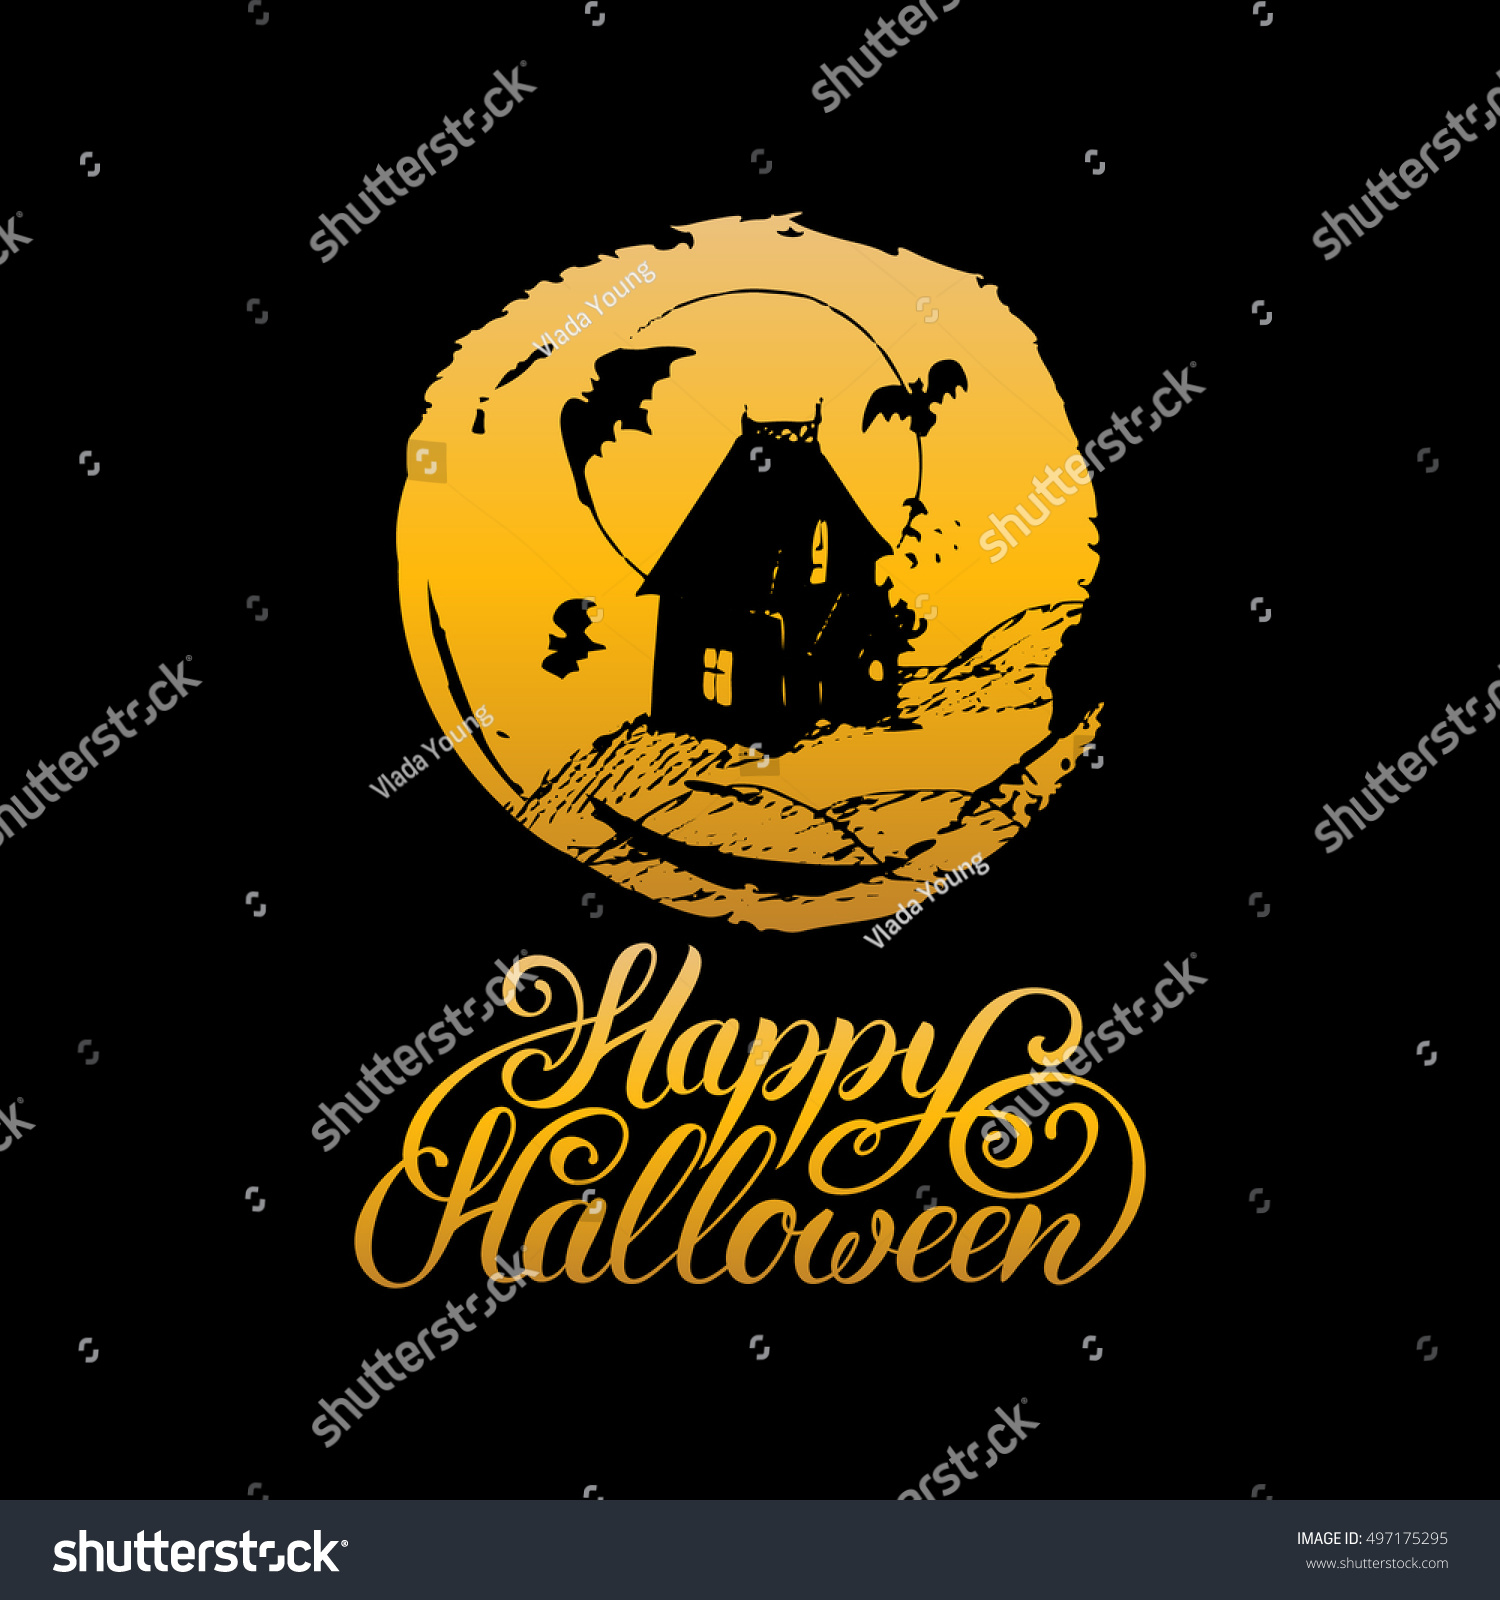 Vector illustration happy halloween lettering all stock vector vector illustration with happy halloween lettering all saints eve background festive traditional symbols biocorpaavc Gallery